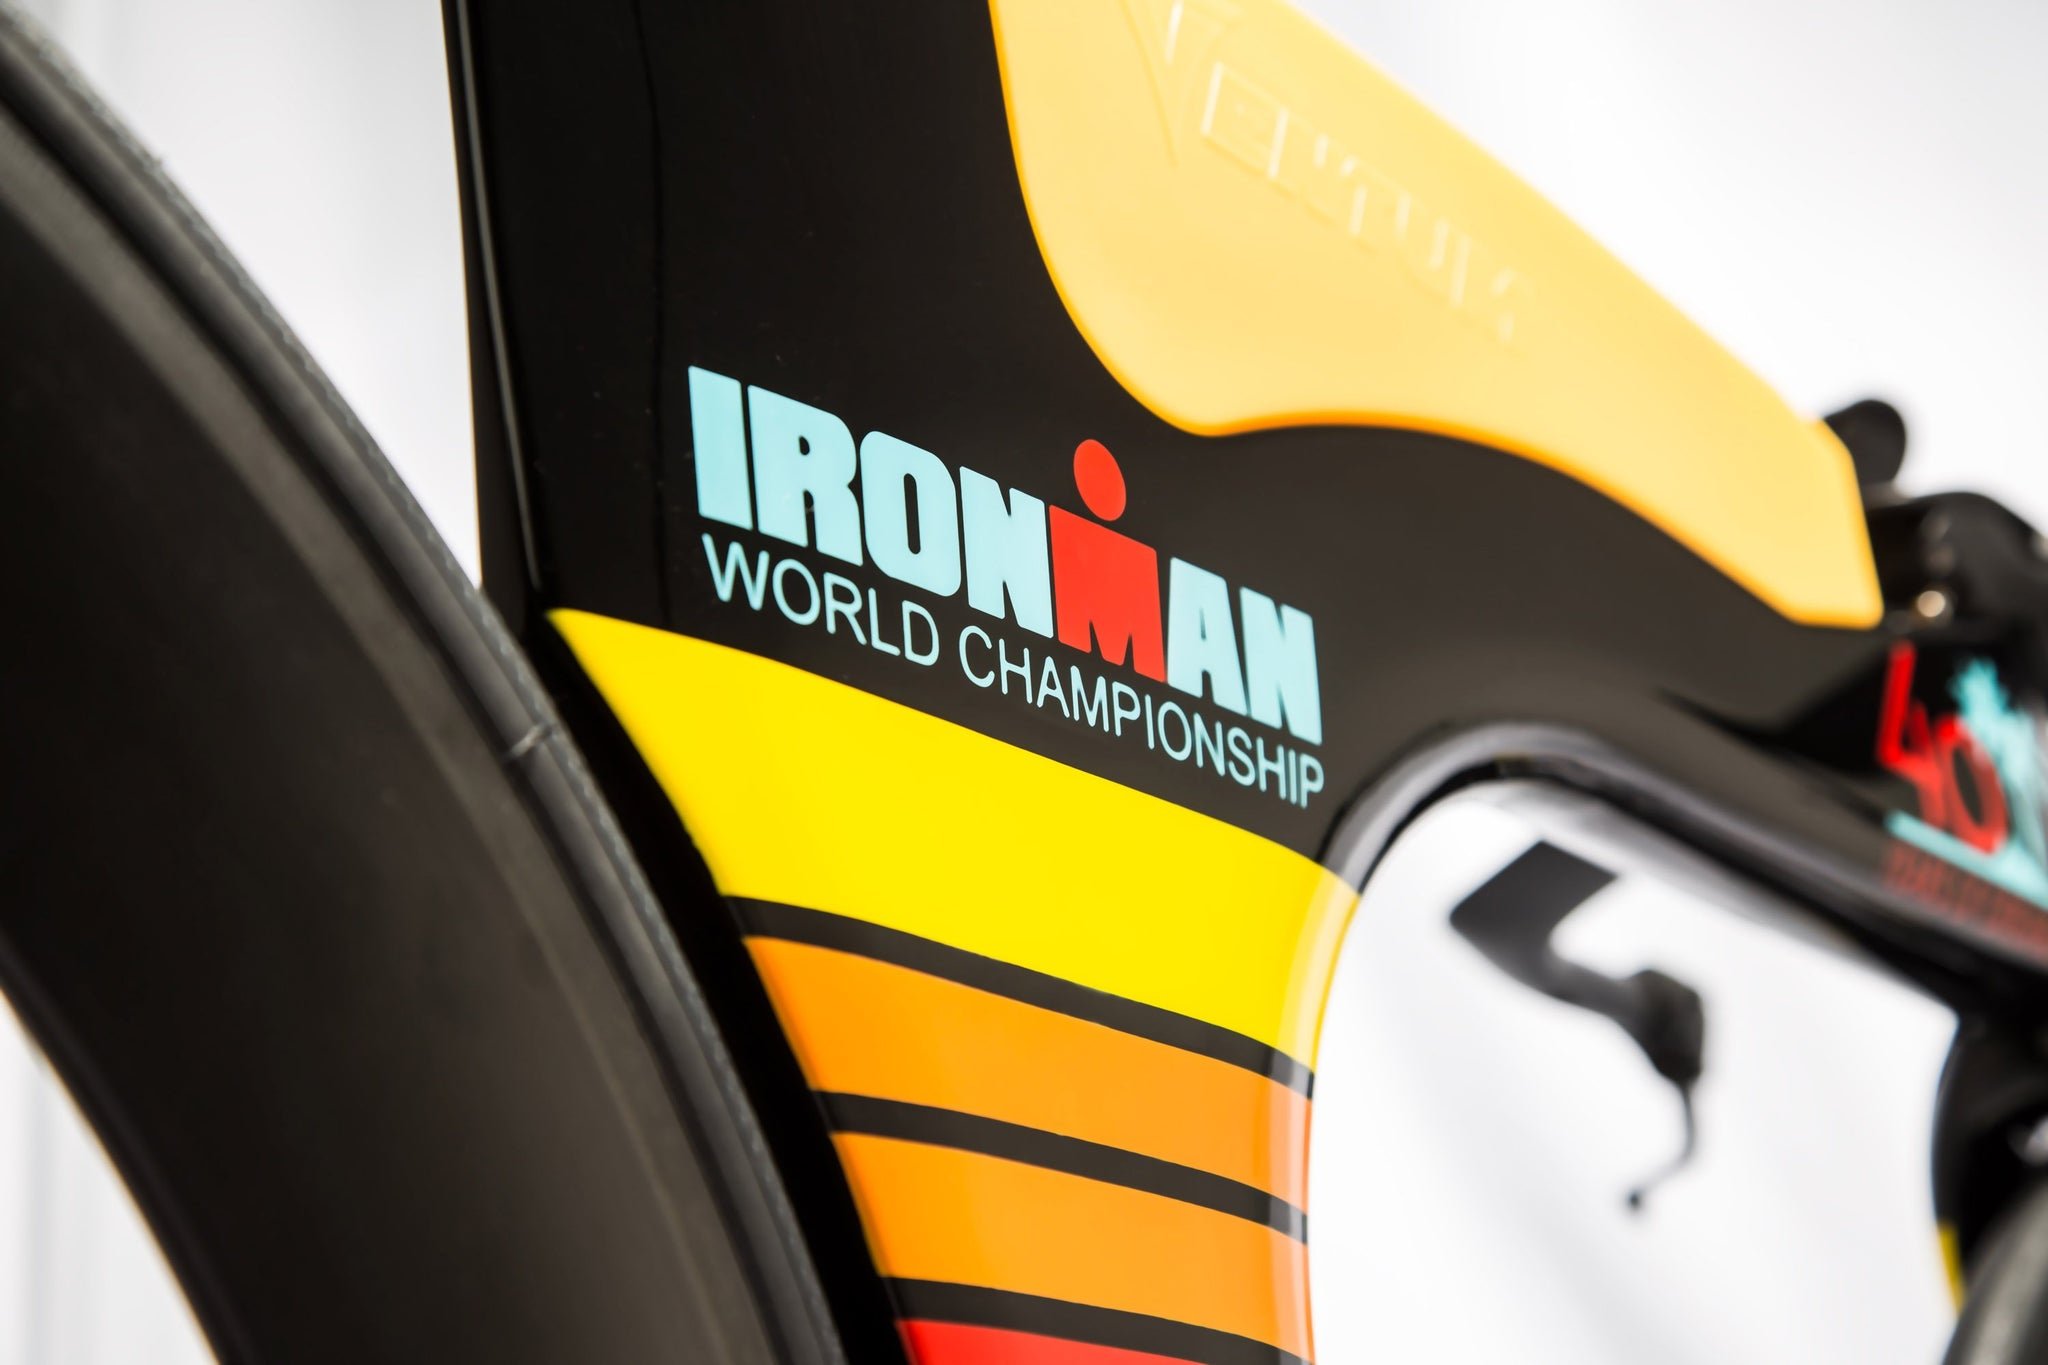 Ventum One IRONMAN 40th Anniversary